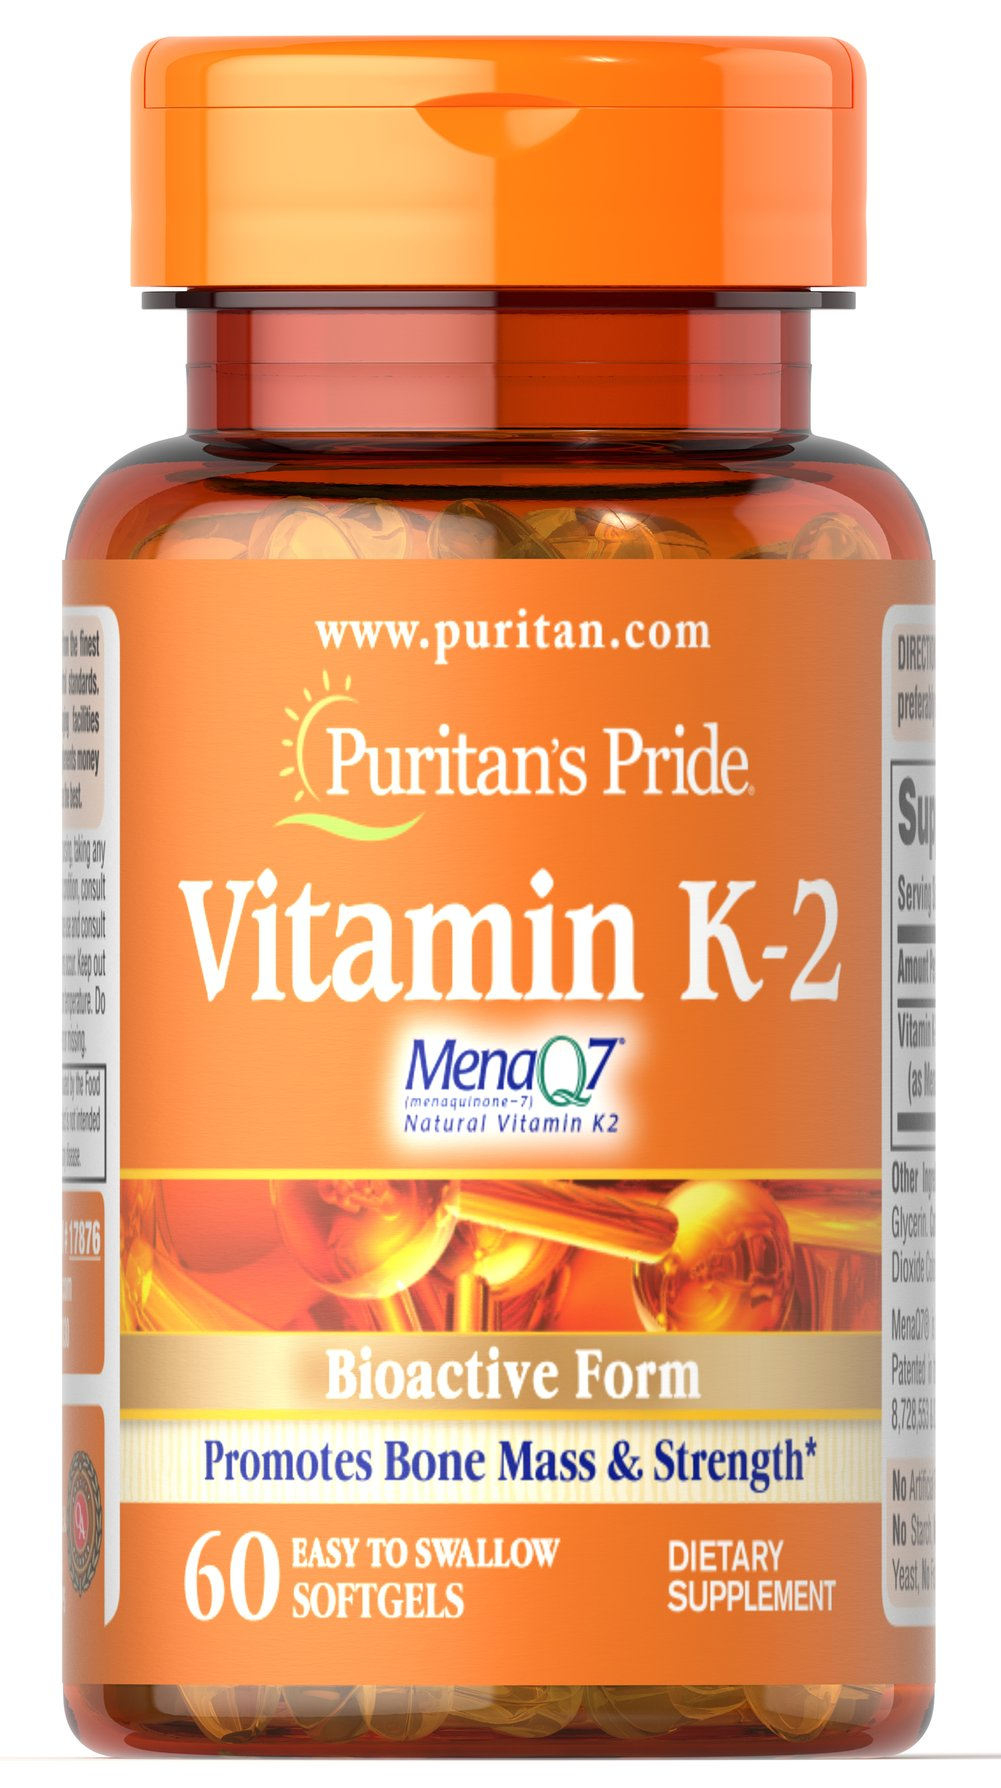 Vitamin K-2 (MenaQ7) 50 mcg  60 Softgels 50 mcg $32.99